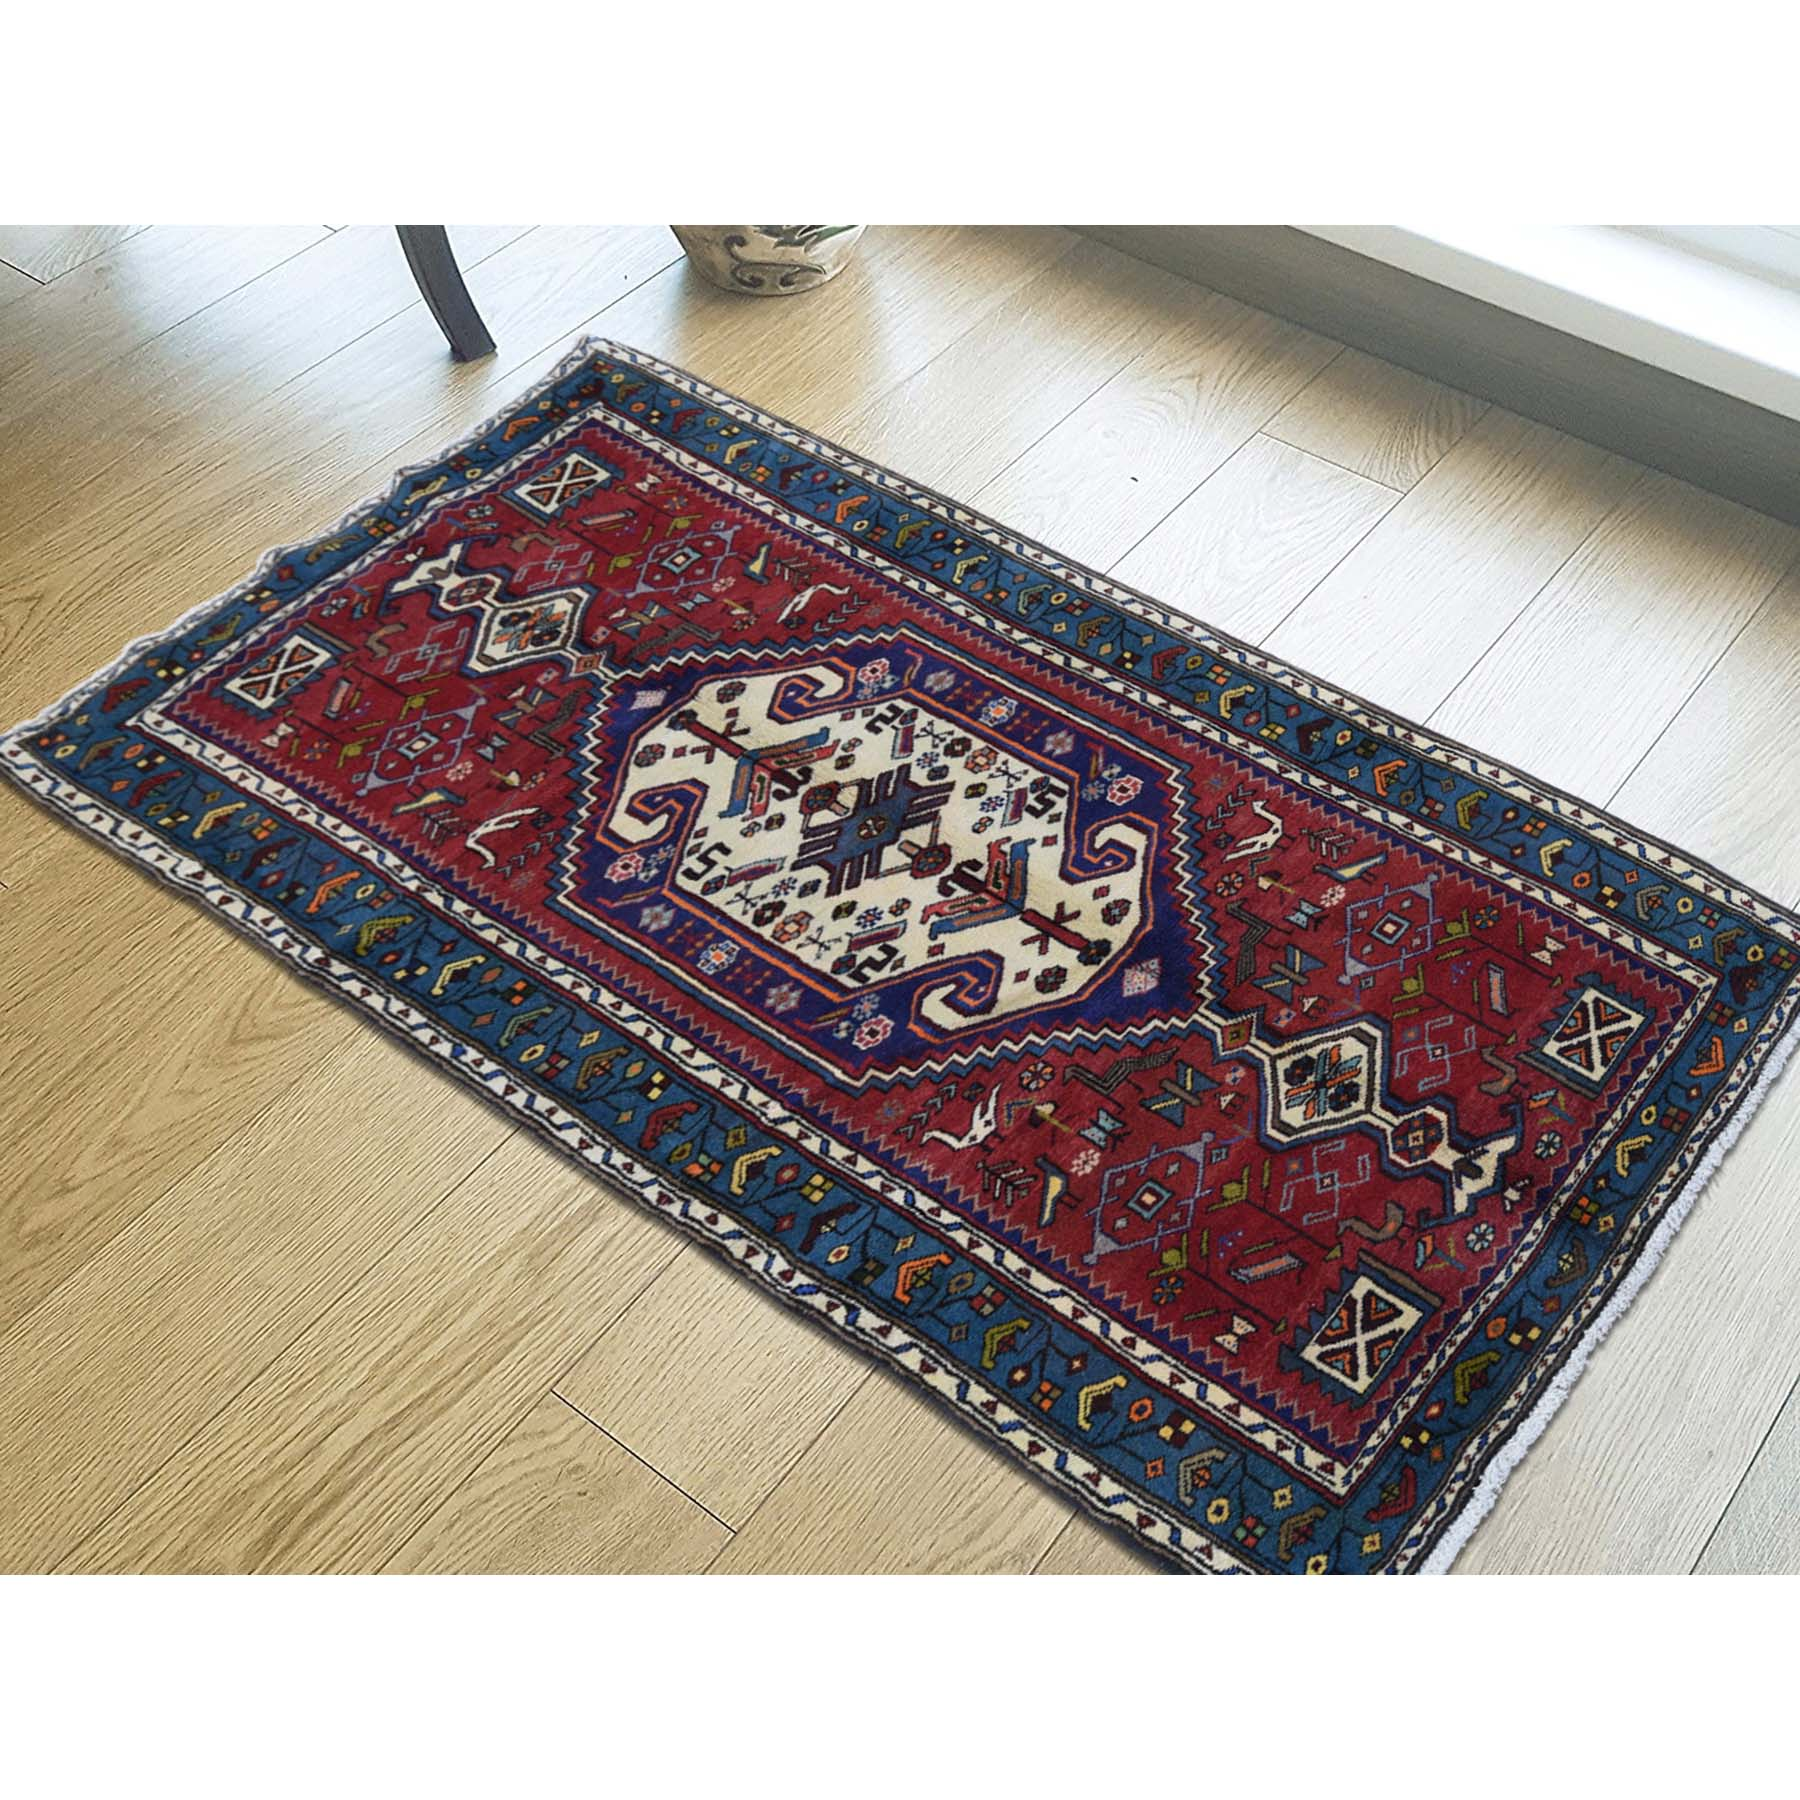 3-4 x6-8  Pure Wool Hand-Knotted New Persian Mosel Runner Oriental Rug